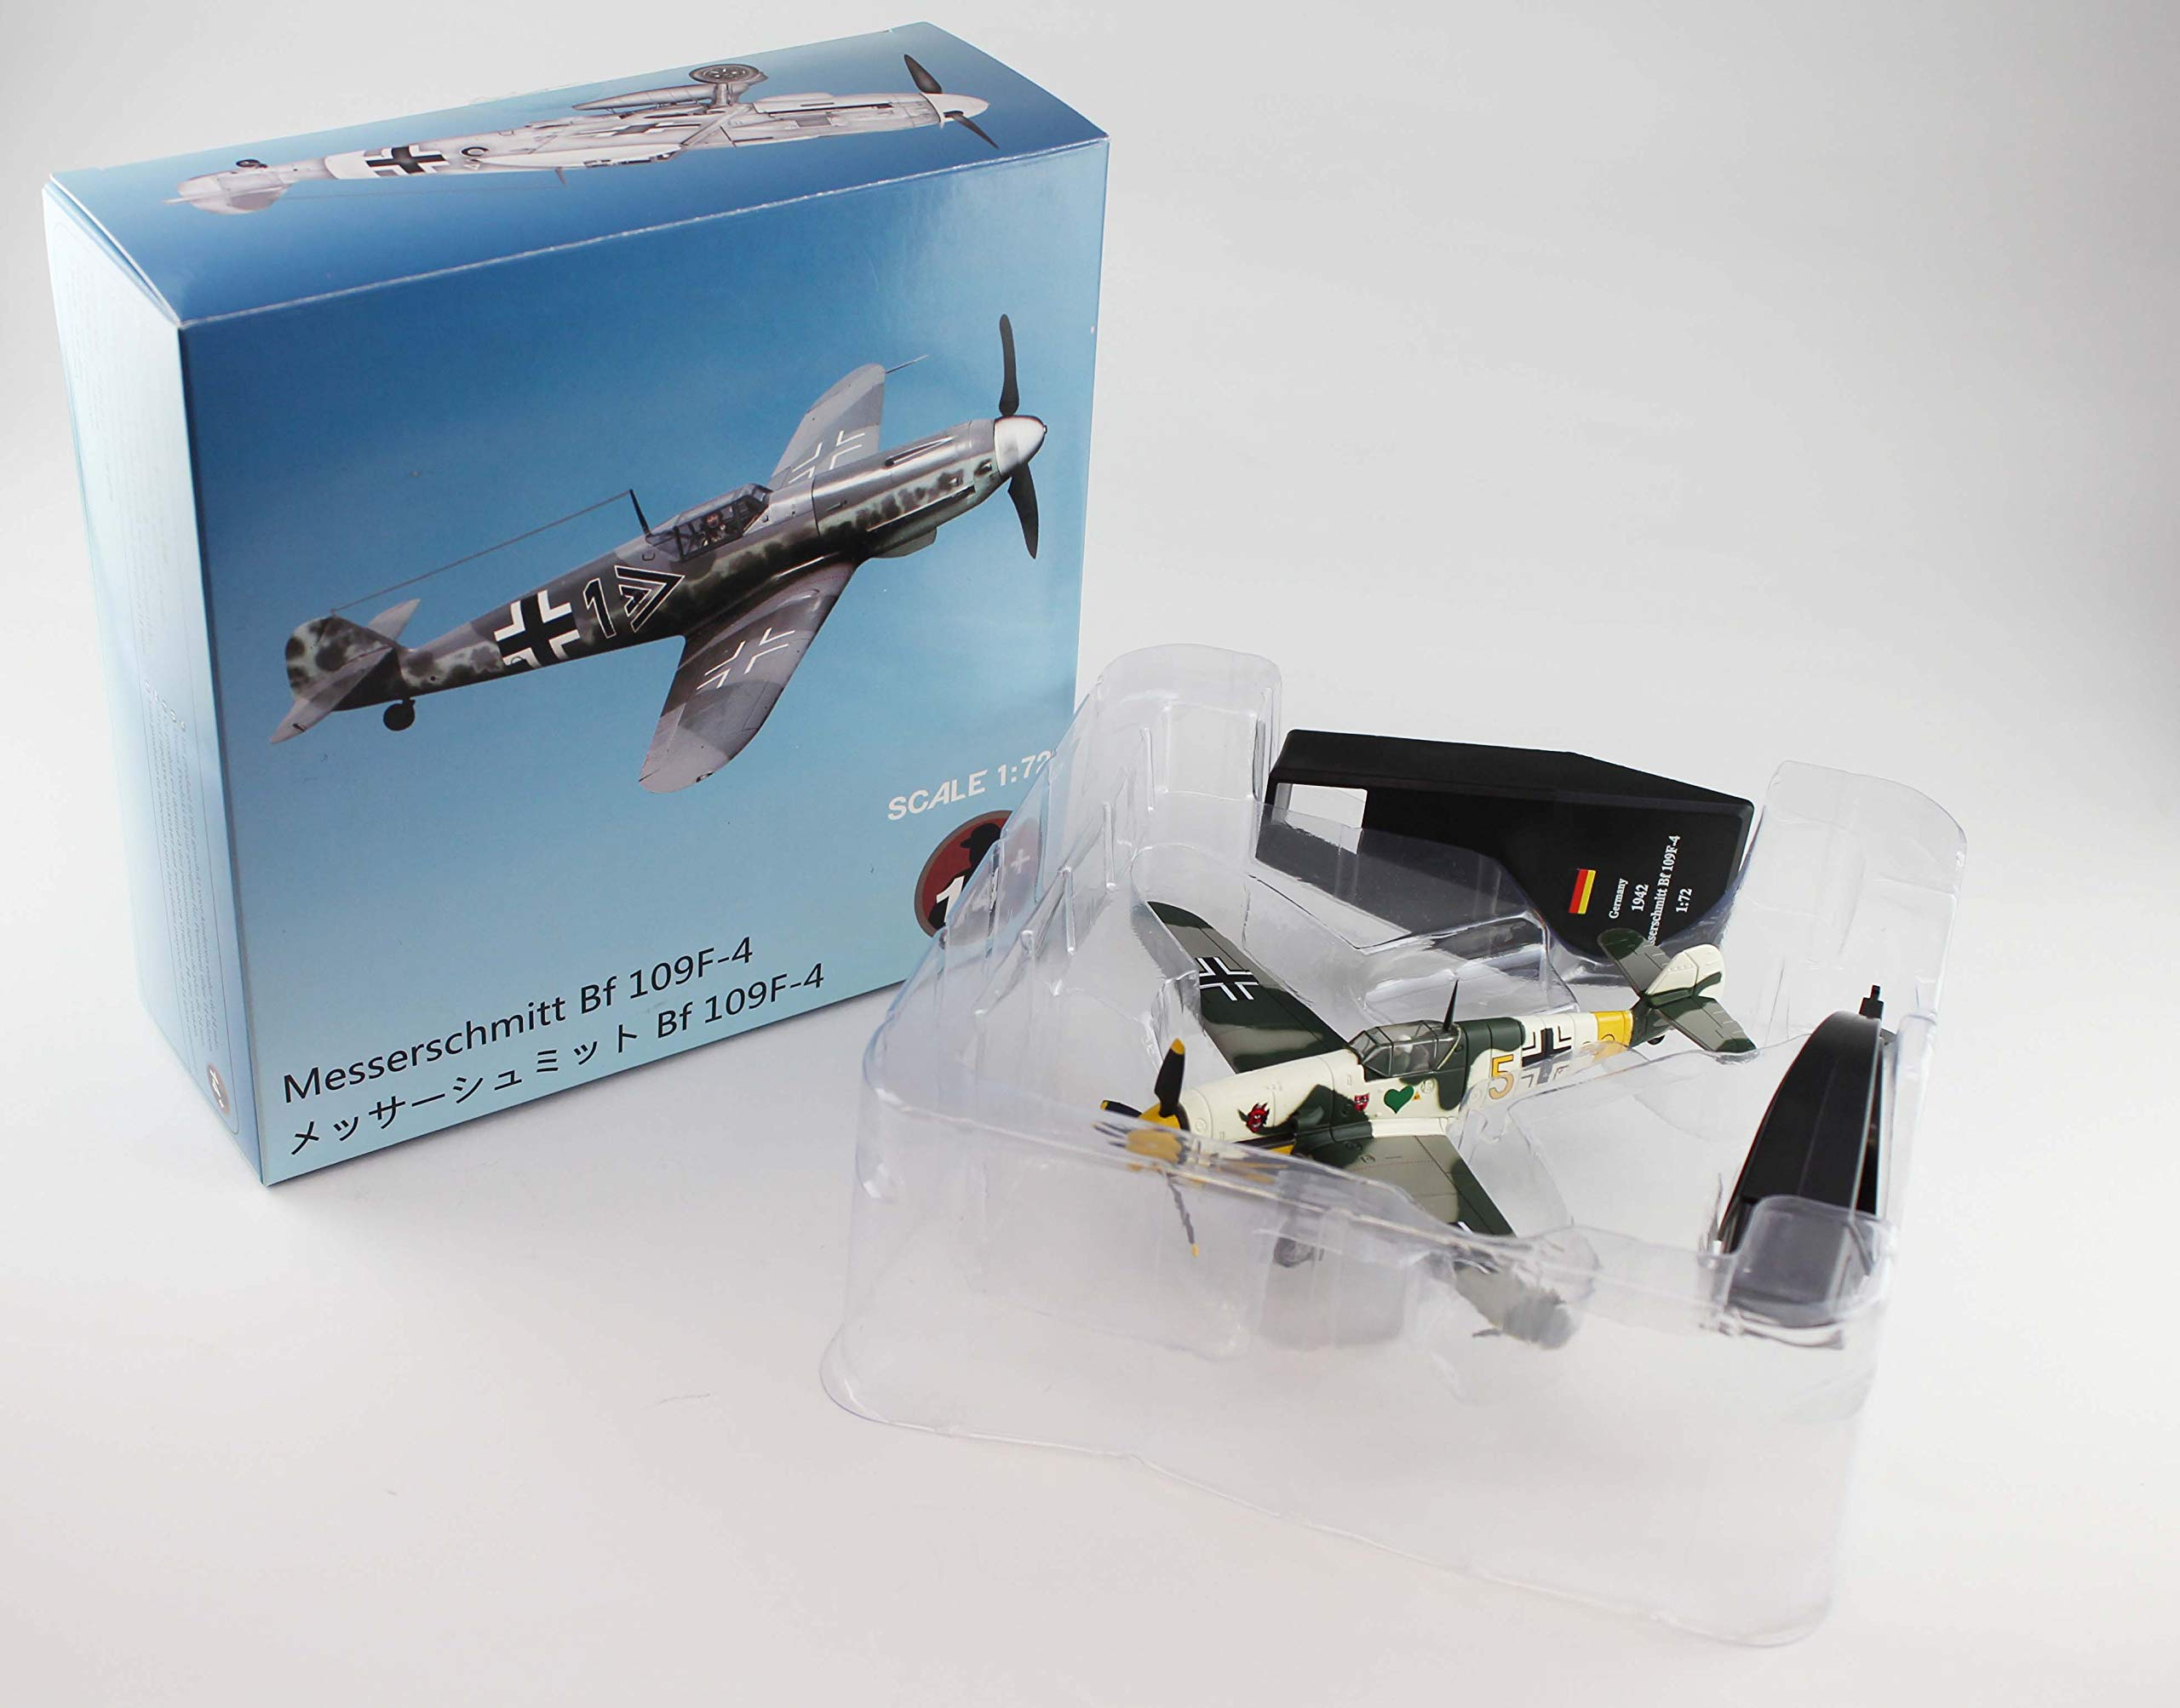 JL Model 1/72 Messerschmitt Bf109F-4 1942 Finished Product by Hobby Japan (HobbyJAPAN)